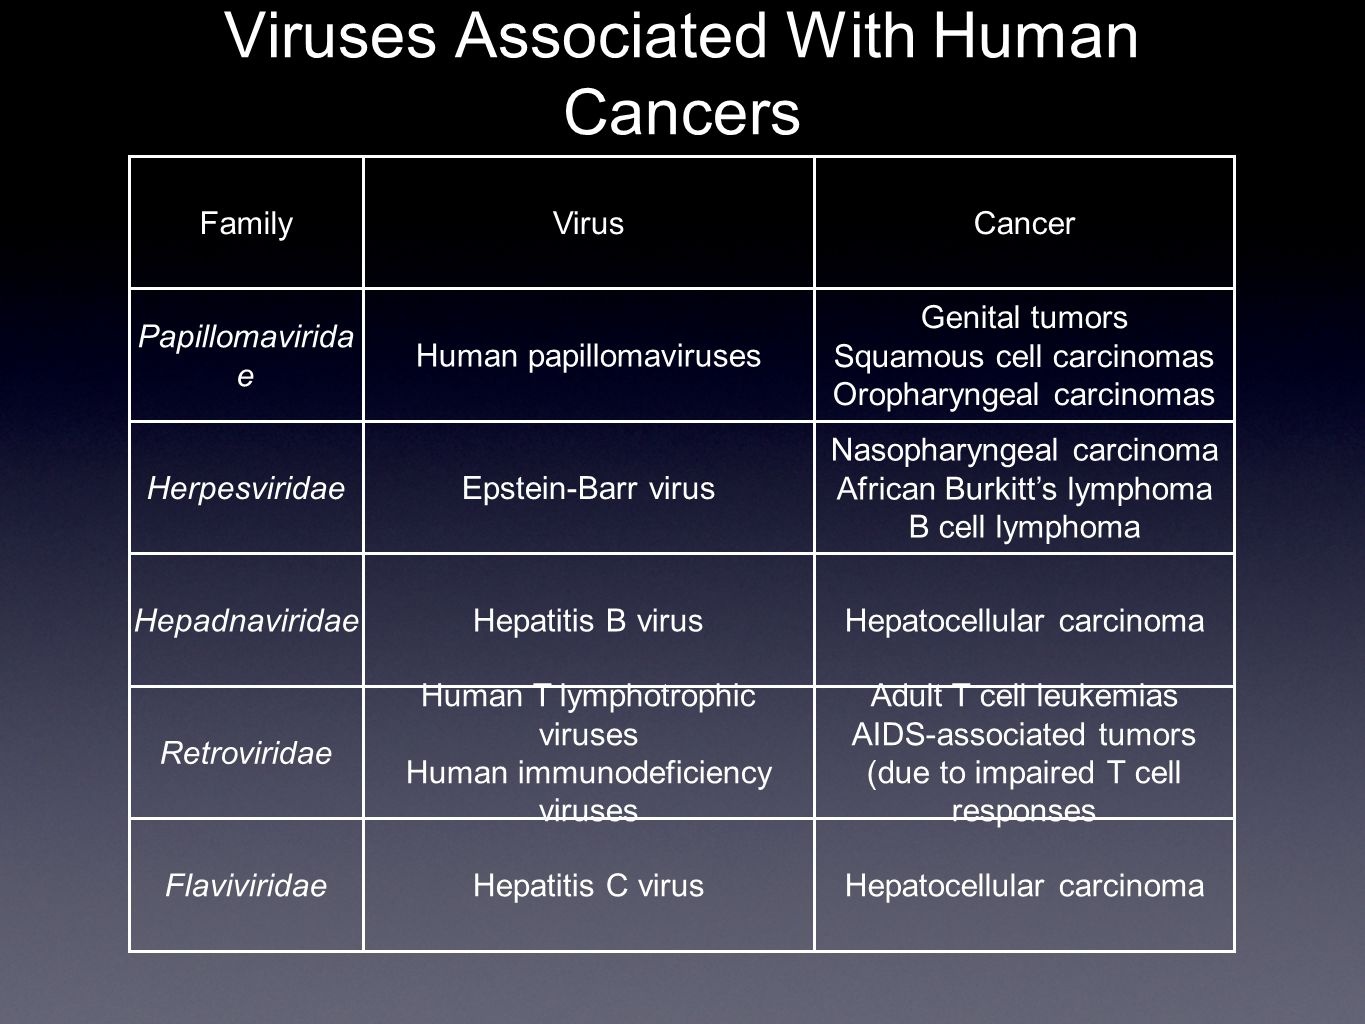 Viruses Associated With Human Cancers